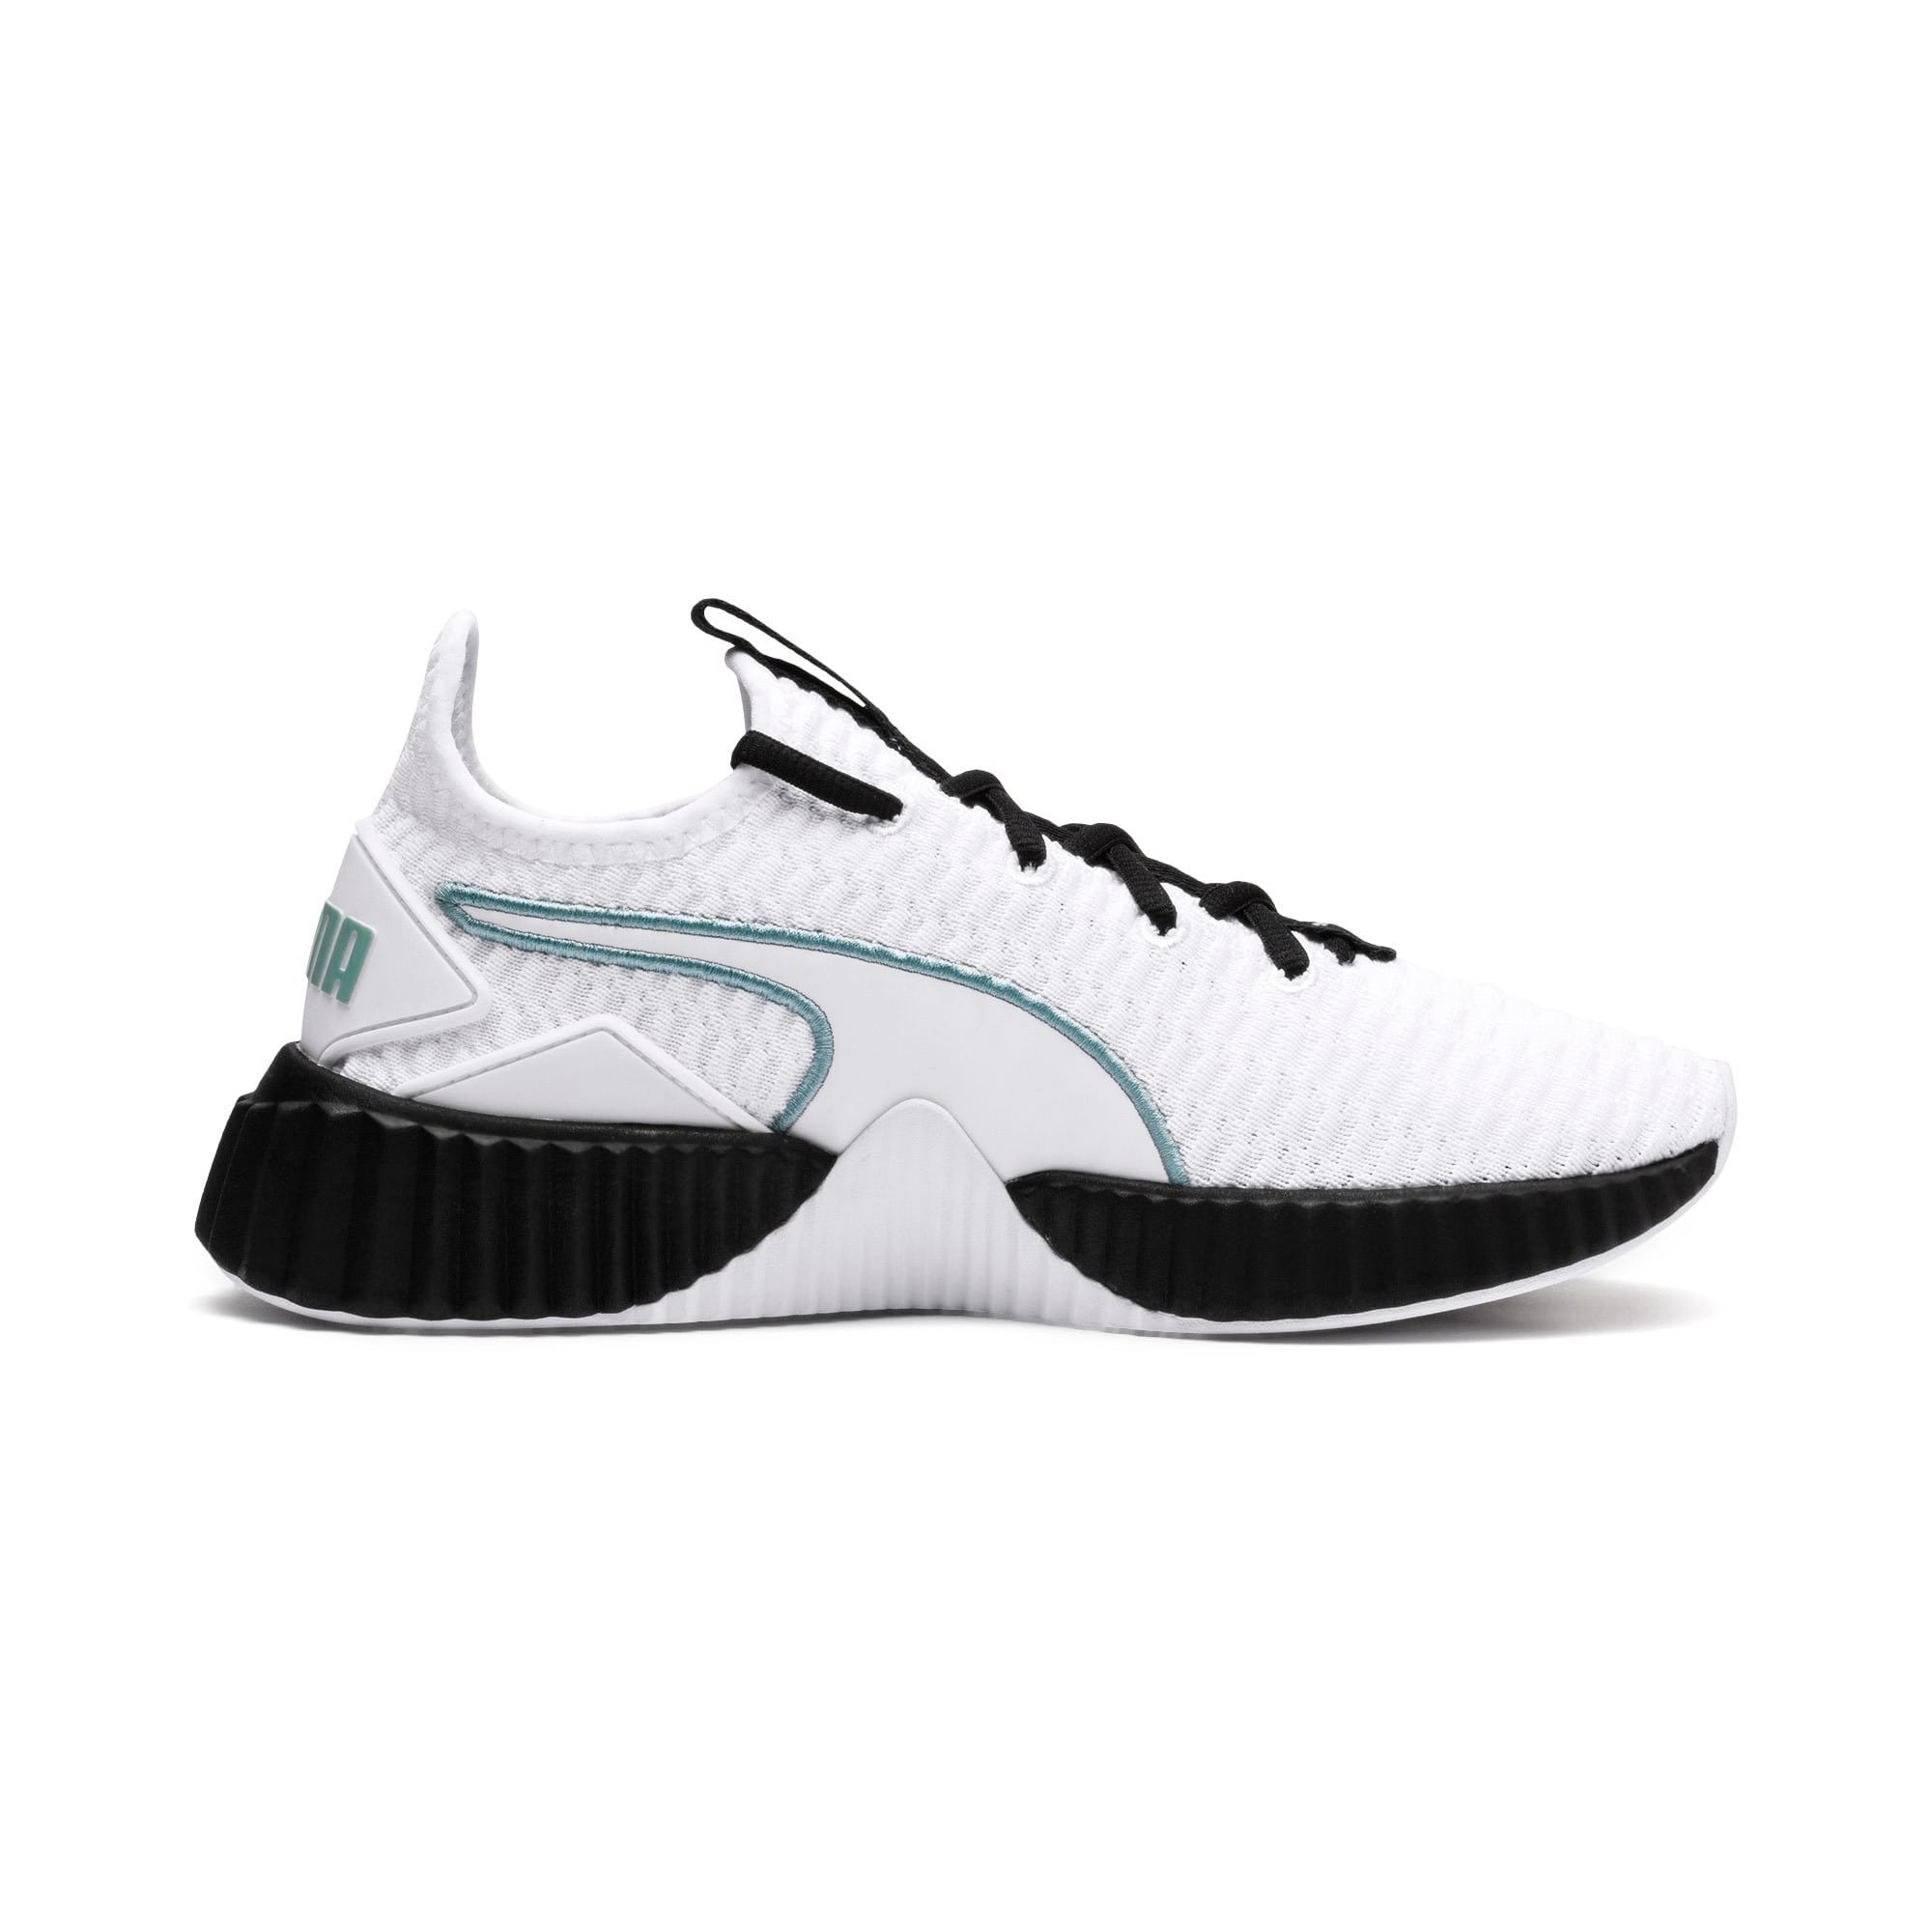 Thumbnail 5 of Defy Women's Training Shoes, Puma White-Puma Black, medium